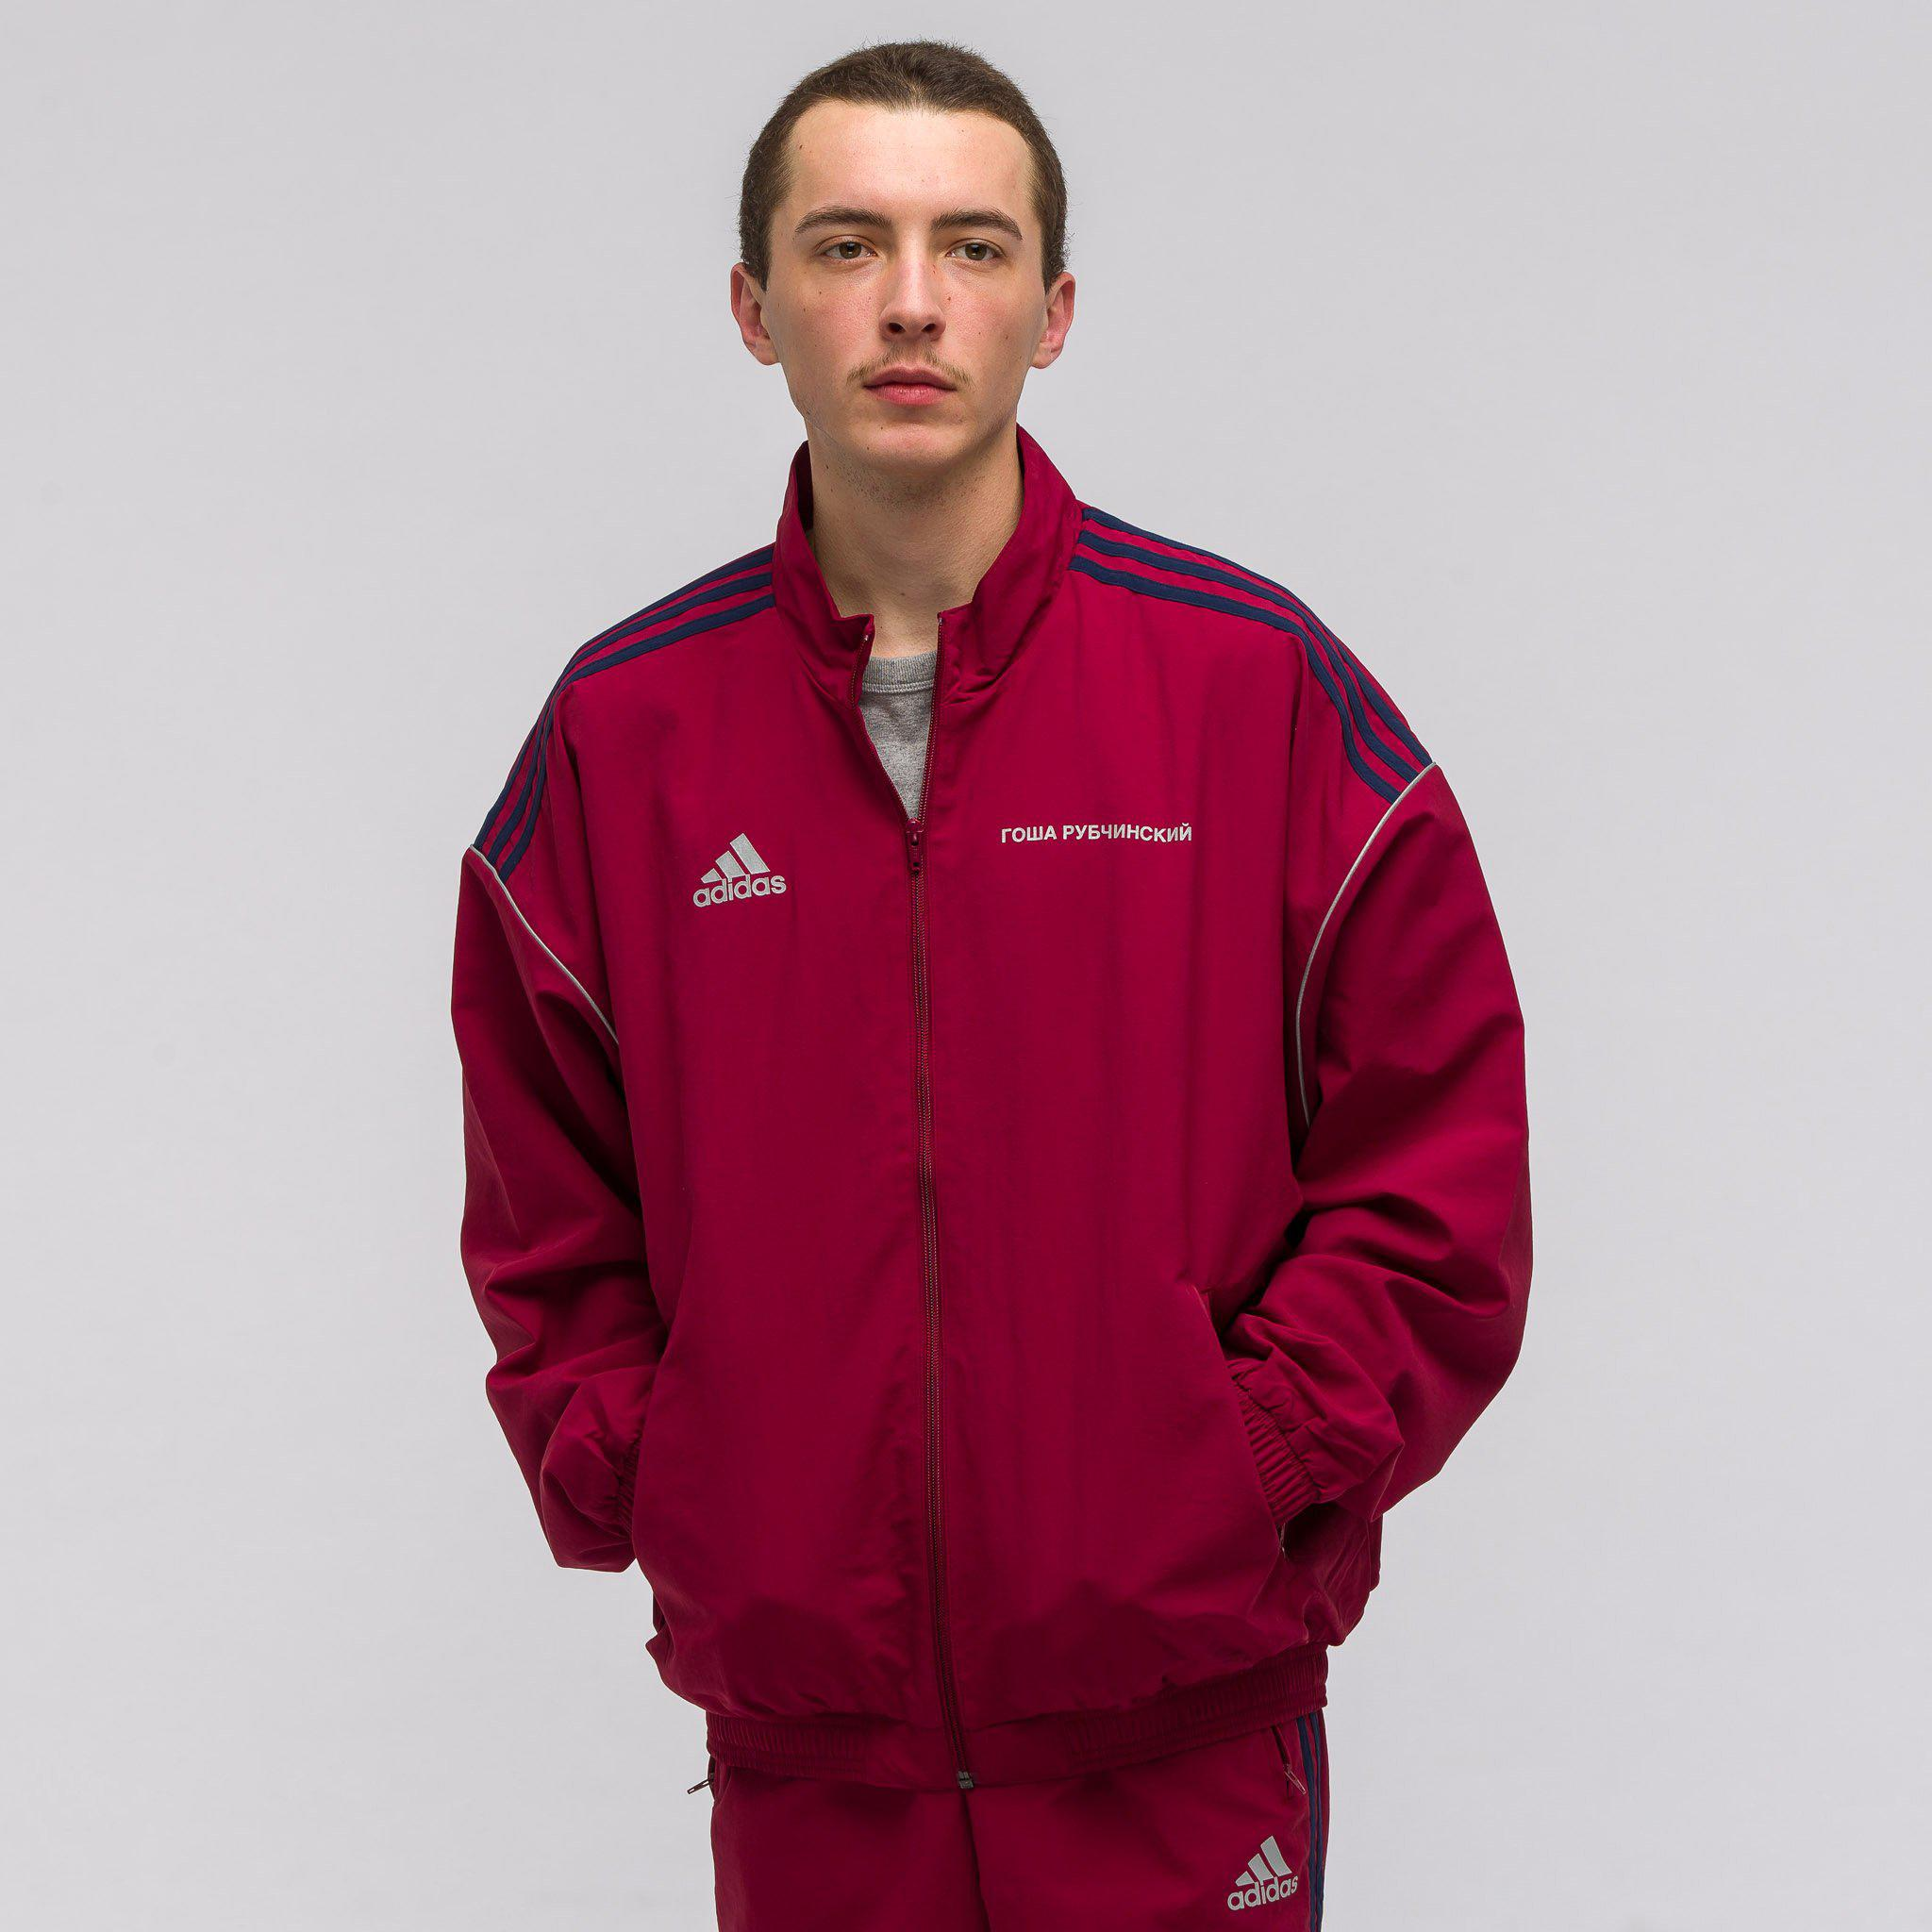 Men's Red X Adidas Track Jacket In Burgundy